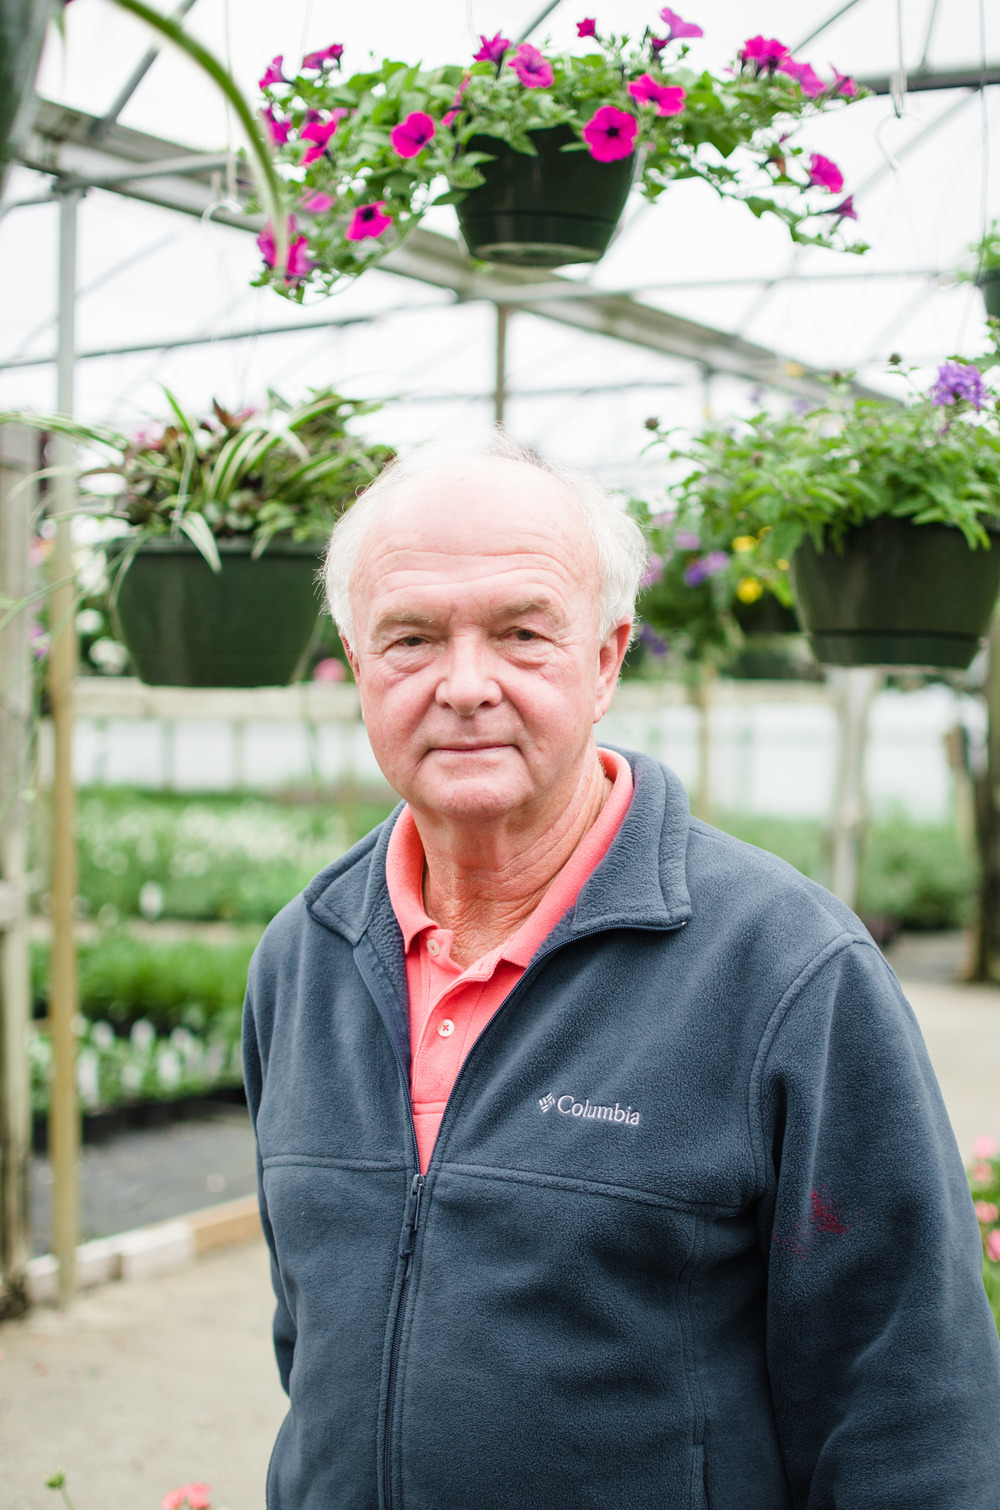 Larry Fish of Tarheel Nursery in Angier, NC